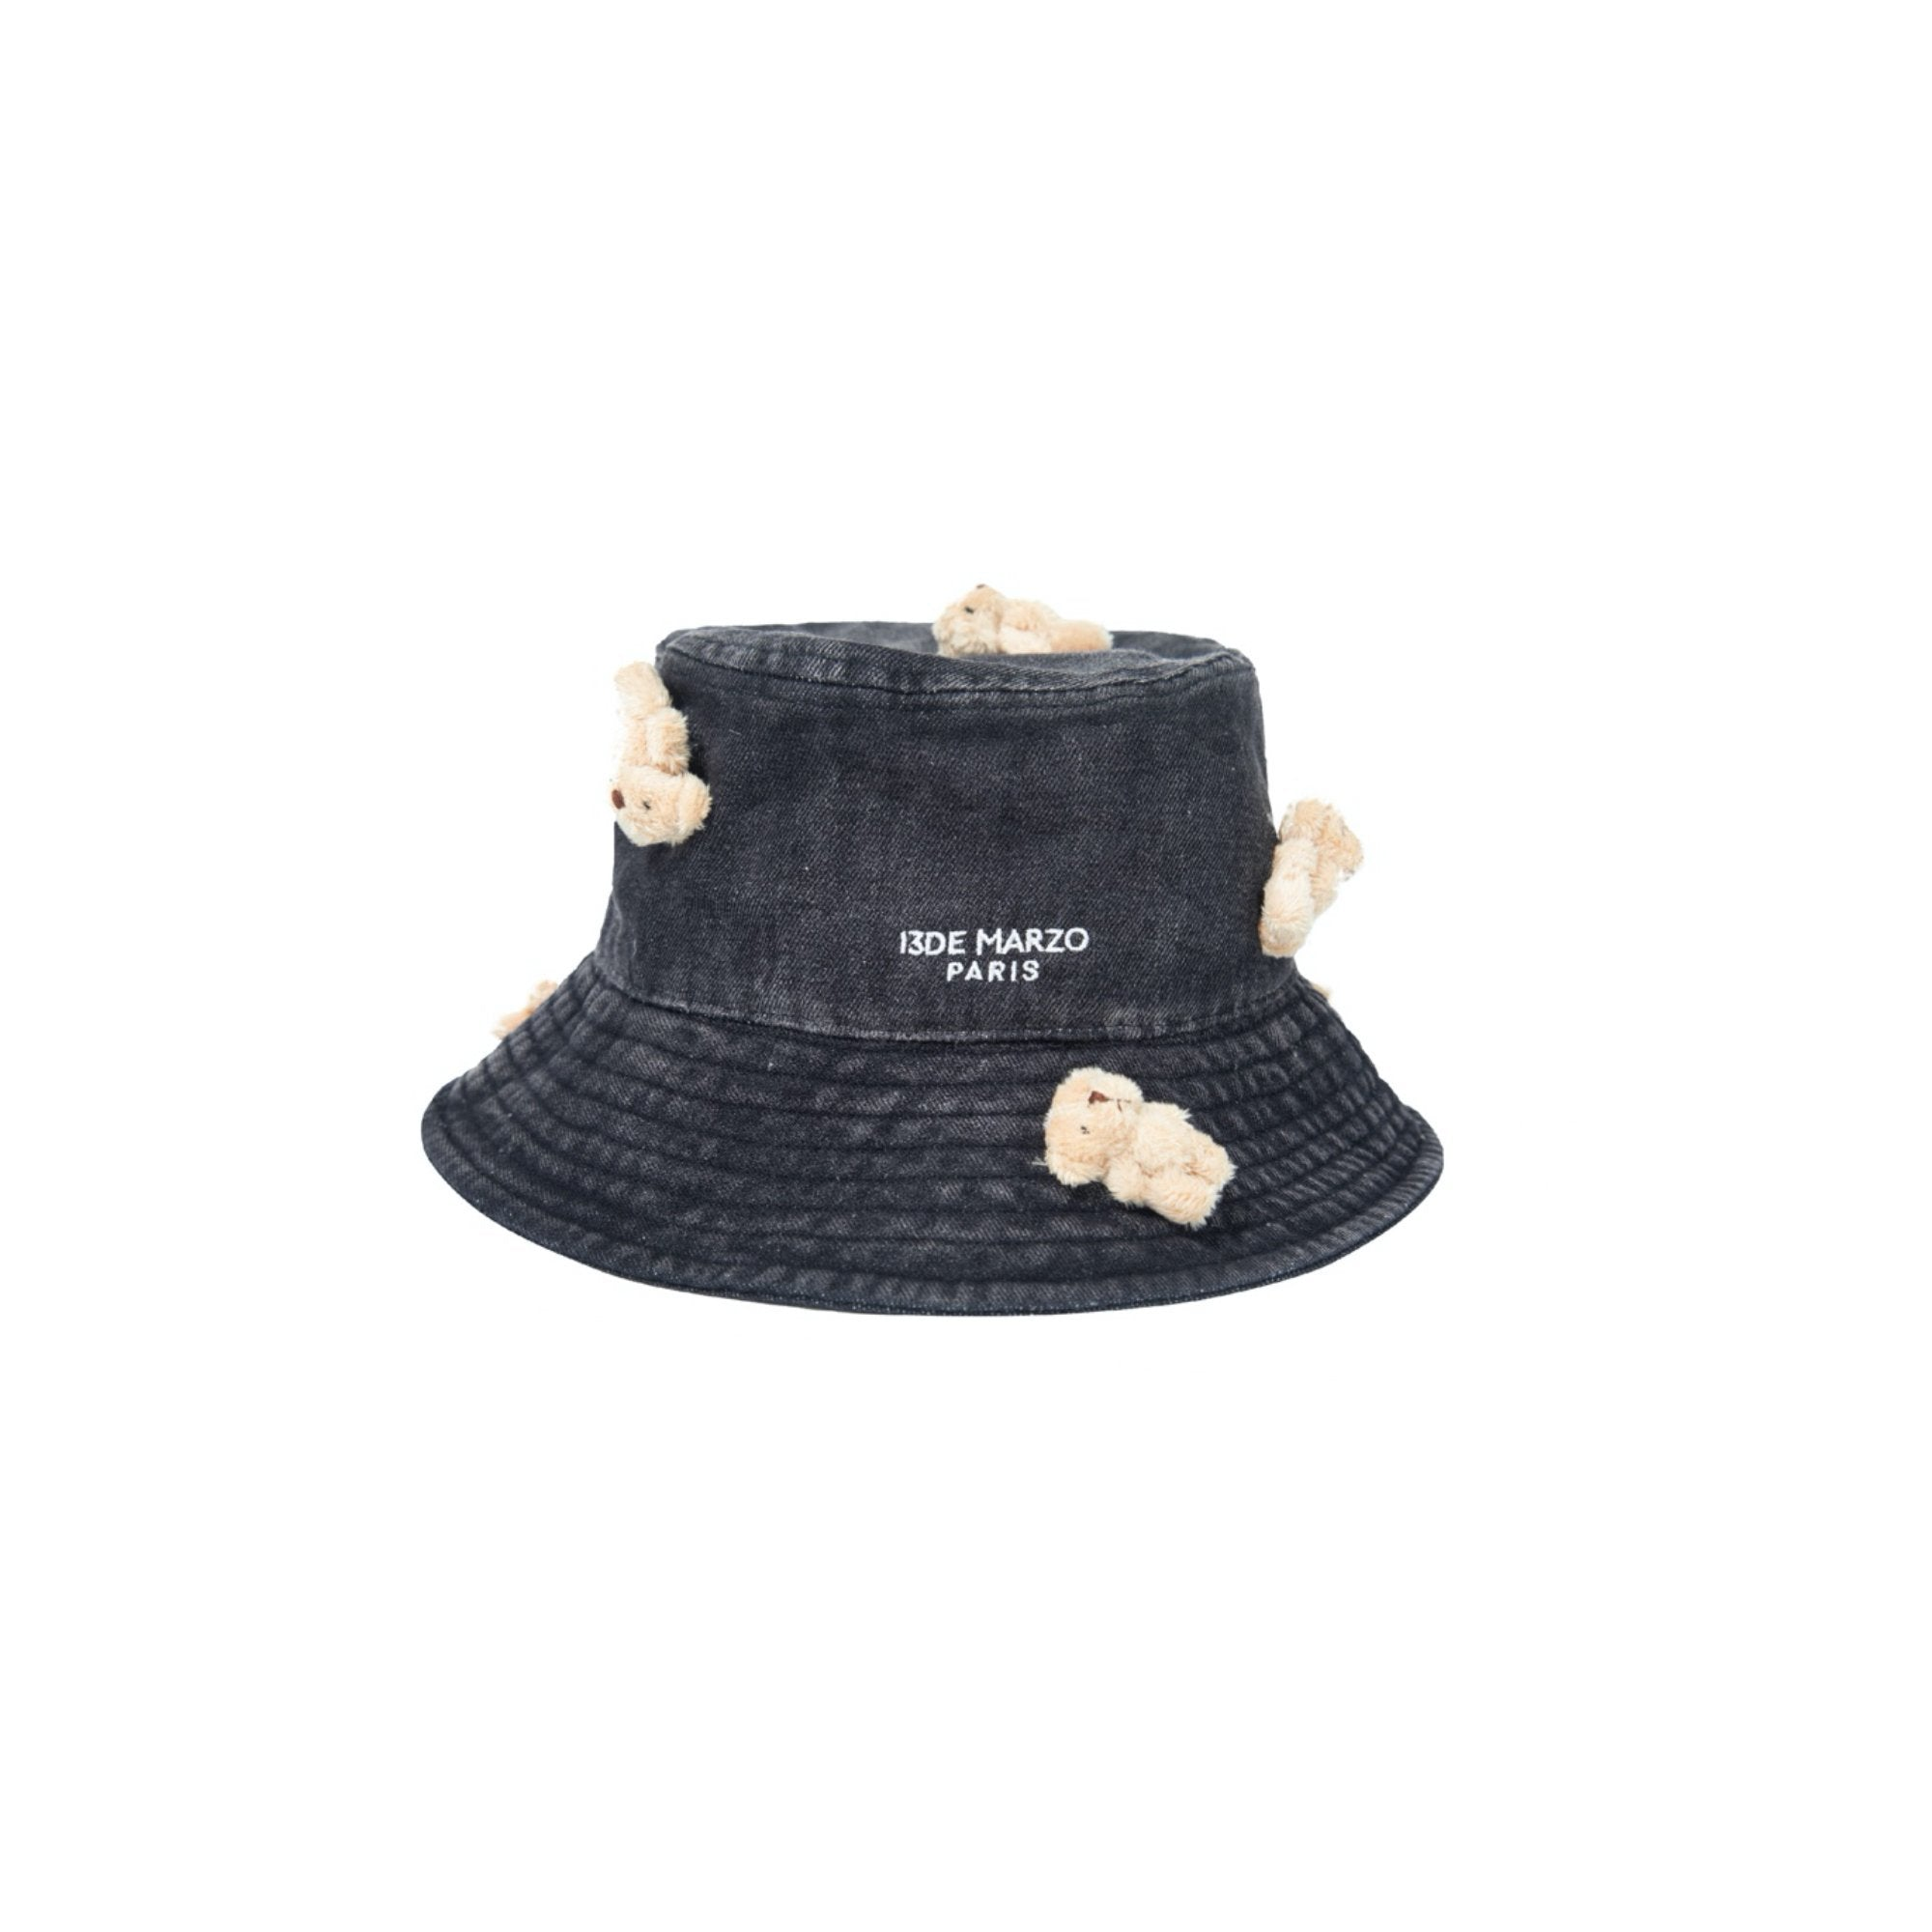 13 DE MARZO Mini Teddy Bear Denim Bucket Hat Washed Black | MADA IN CHINA